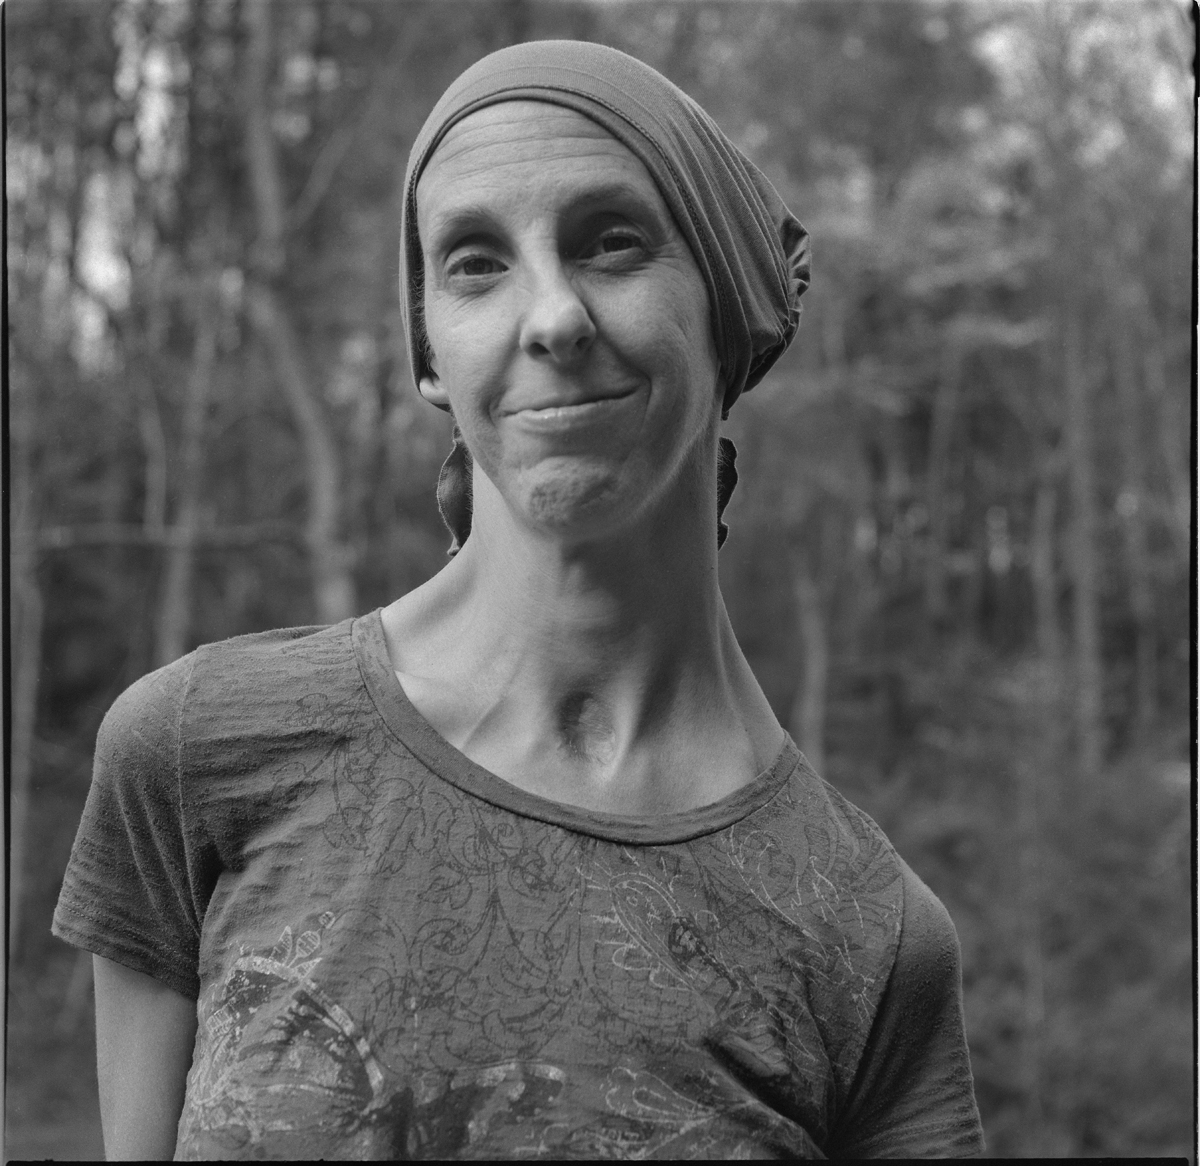 Jenna Nagle, after completing chemotherapy treatment for breast cancer, Guntertown, Madison County, 2019.